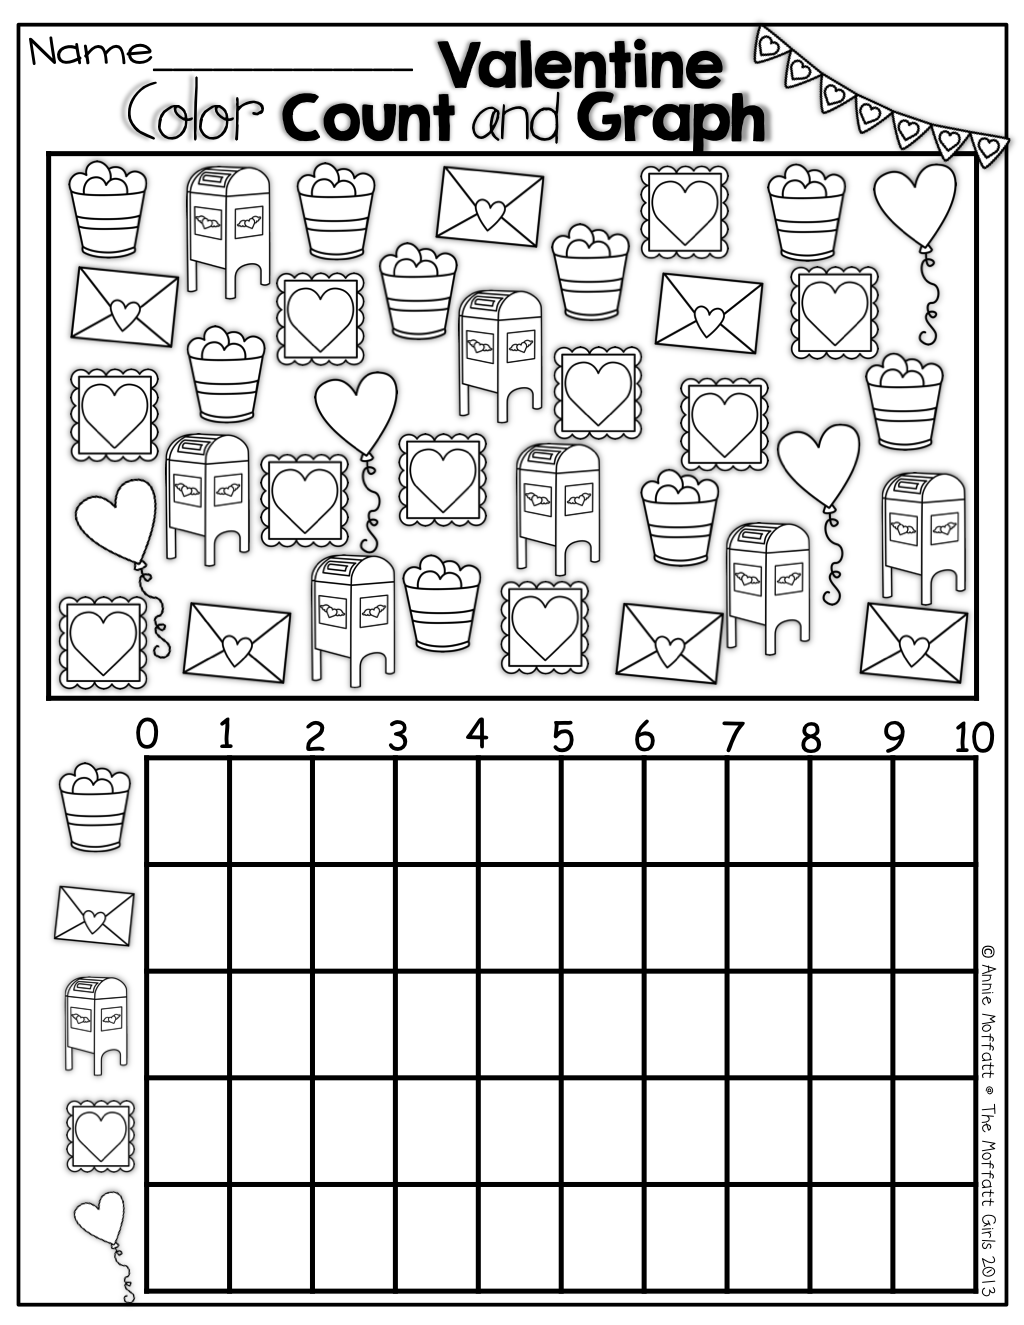 Valentine Color, Count and Graph! | Education | Pinterest ...